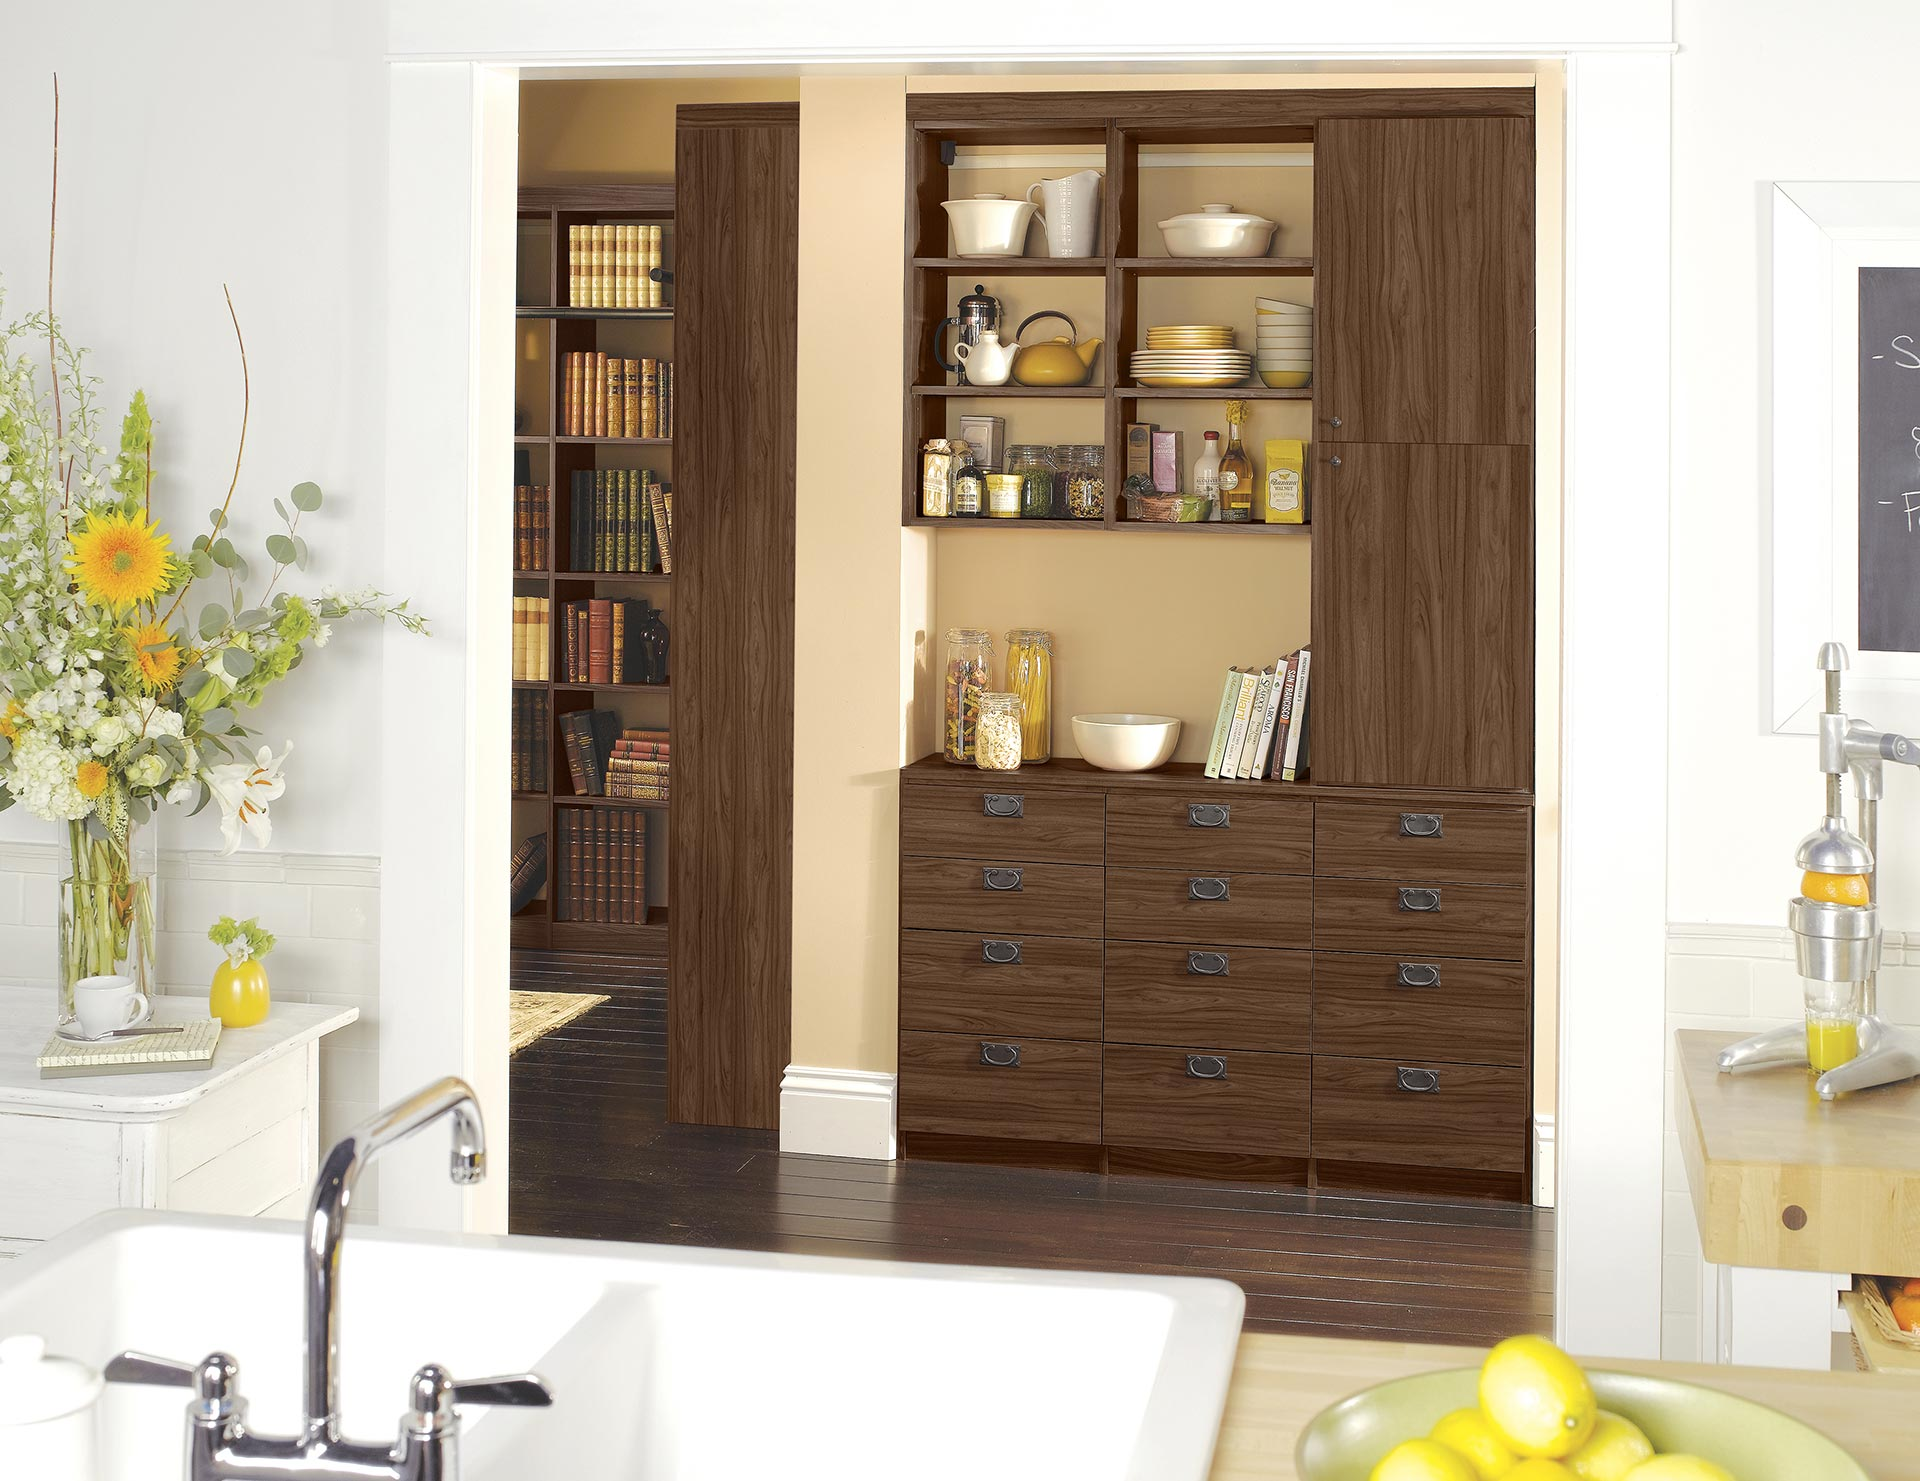 kitchen closets booth table pantry cabinets organization ideas california dark wood built in storage and library shelving with drawers